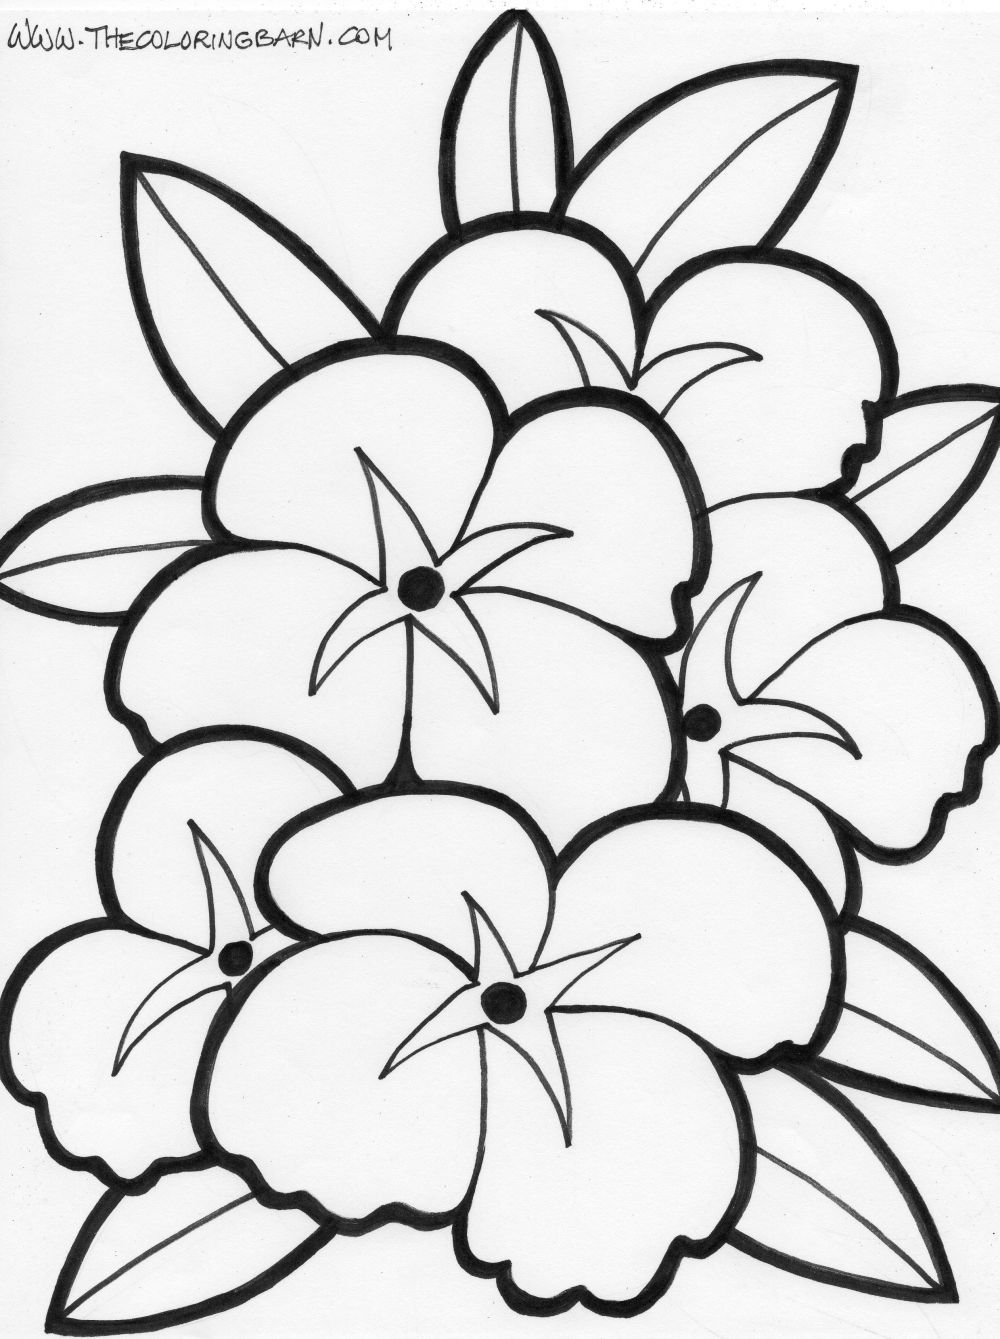 Printable coloring pages for adults flowers - Find This Pin And More On Coloring Pages Free Printable Flower